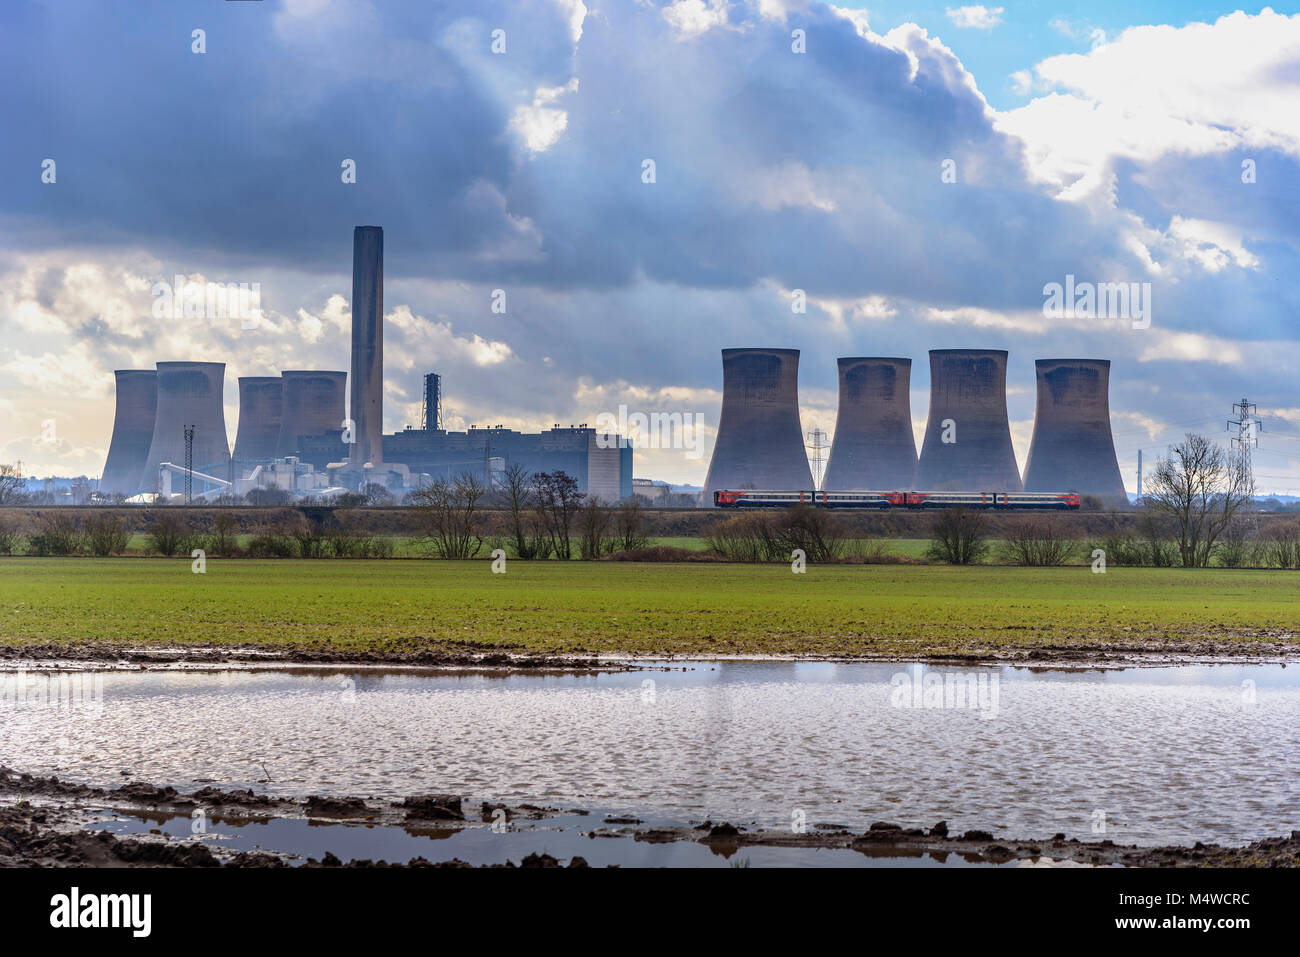 An East Midlands train passes Fiddlers Ferry power station. - Stock Image